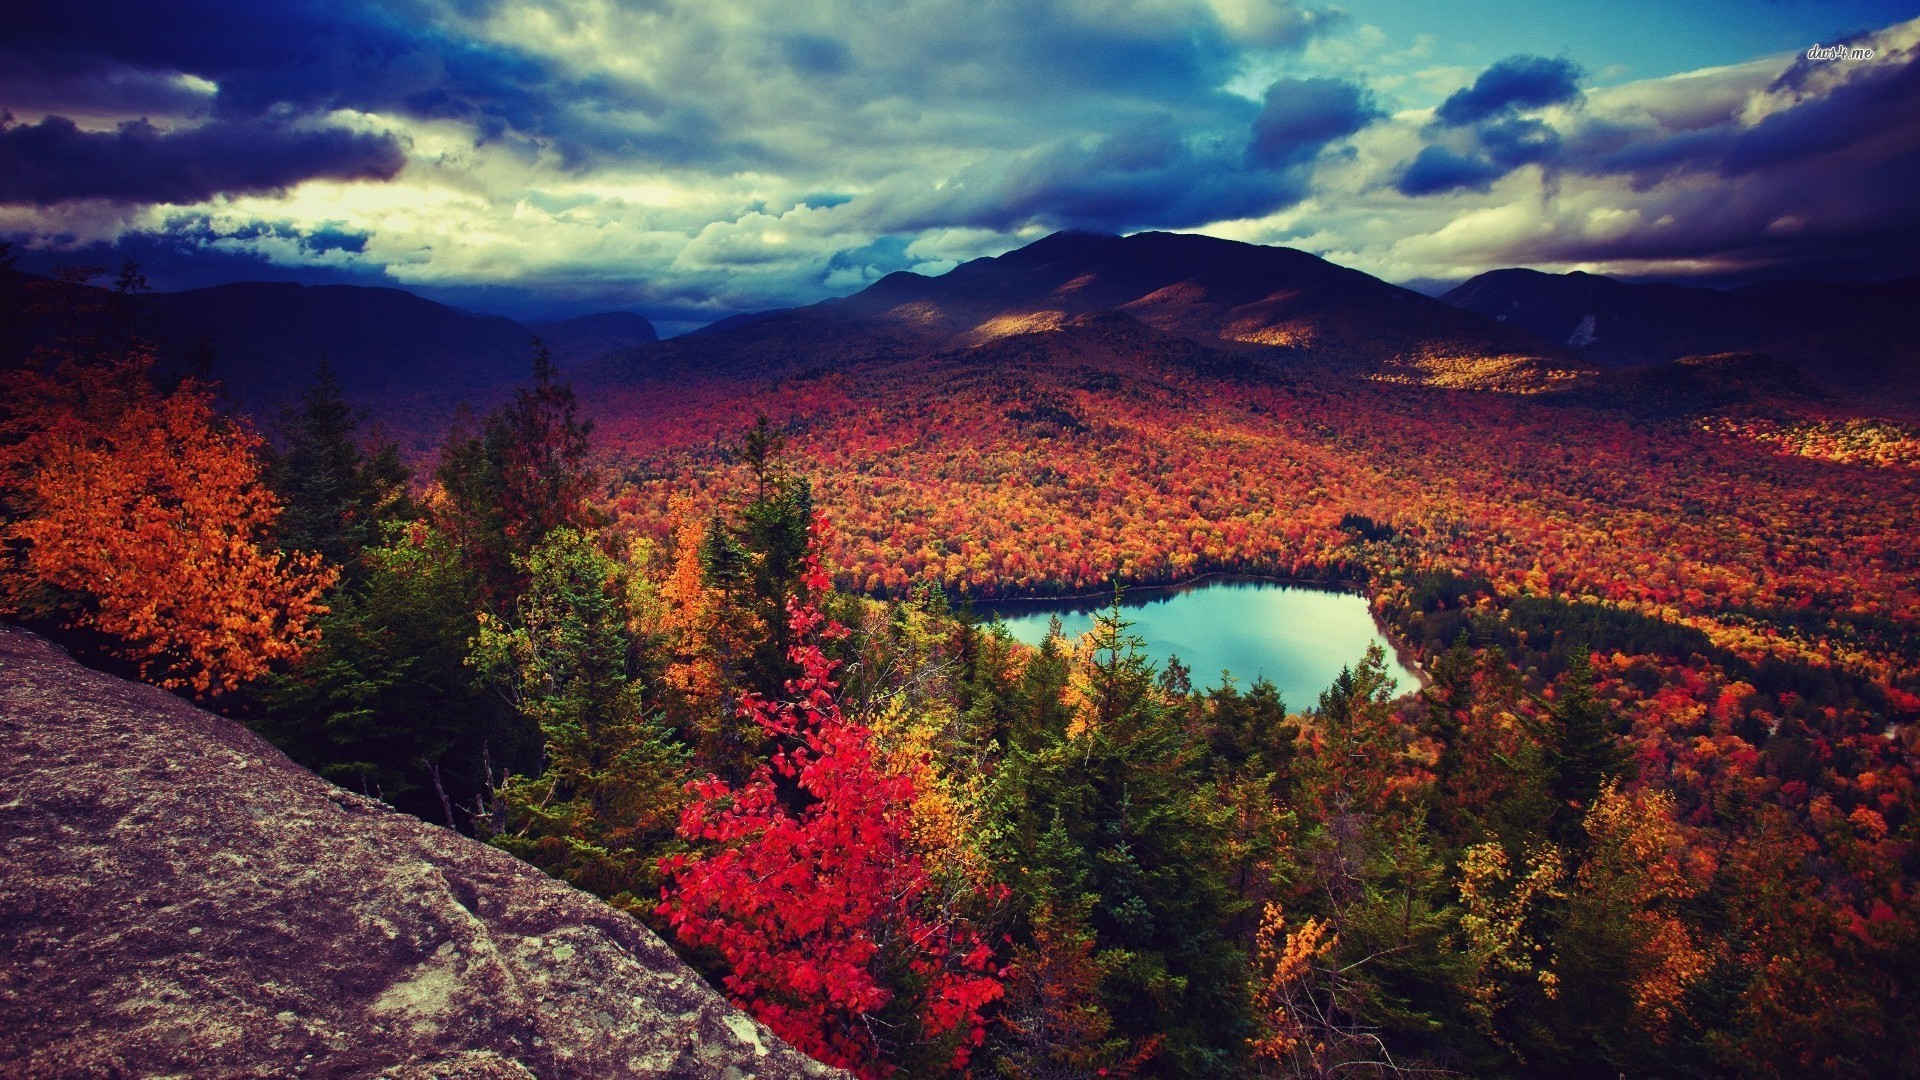 Fall Mountain Wallpapers Desktop Background with Wallpaper High Resolution  px 744.13 KB